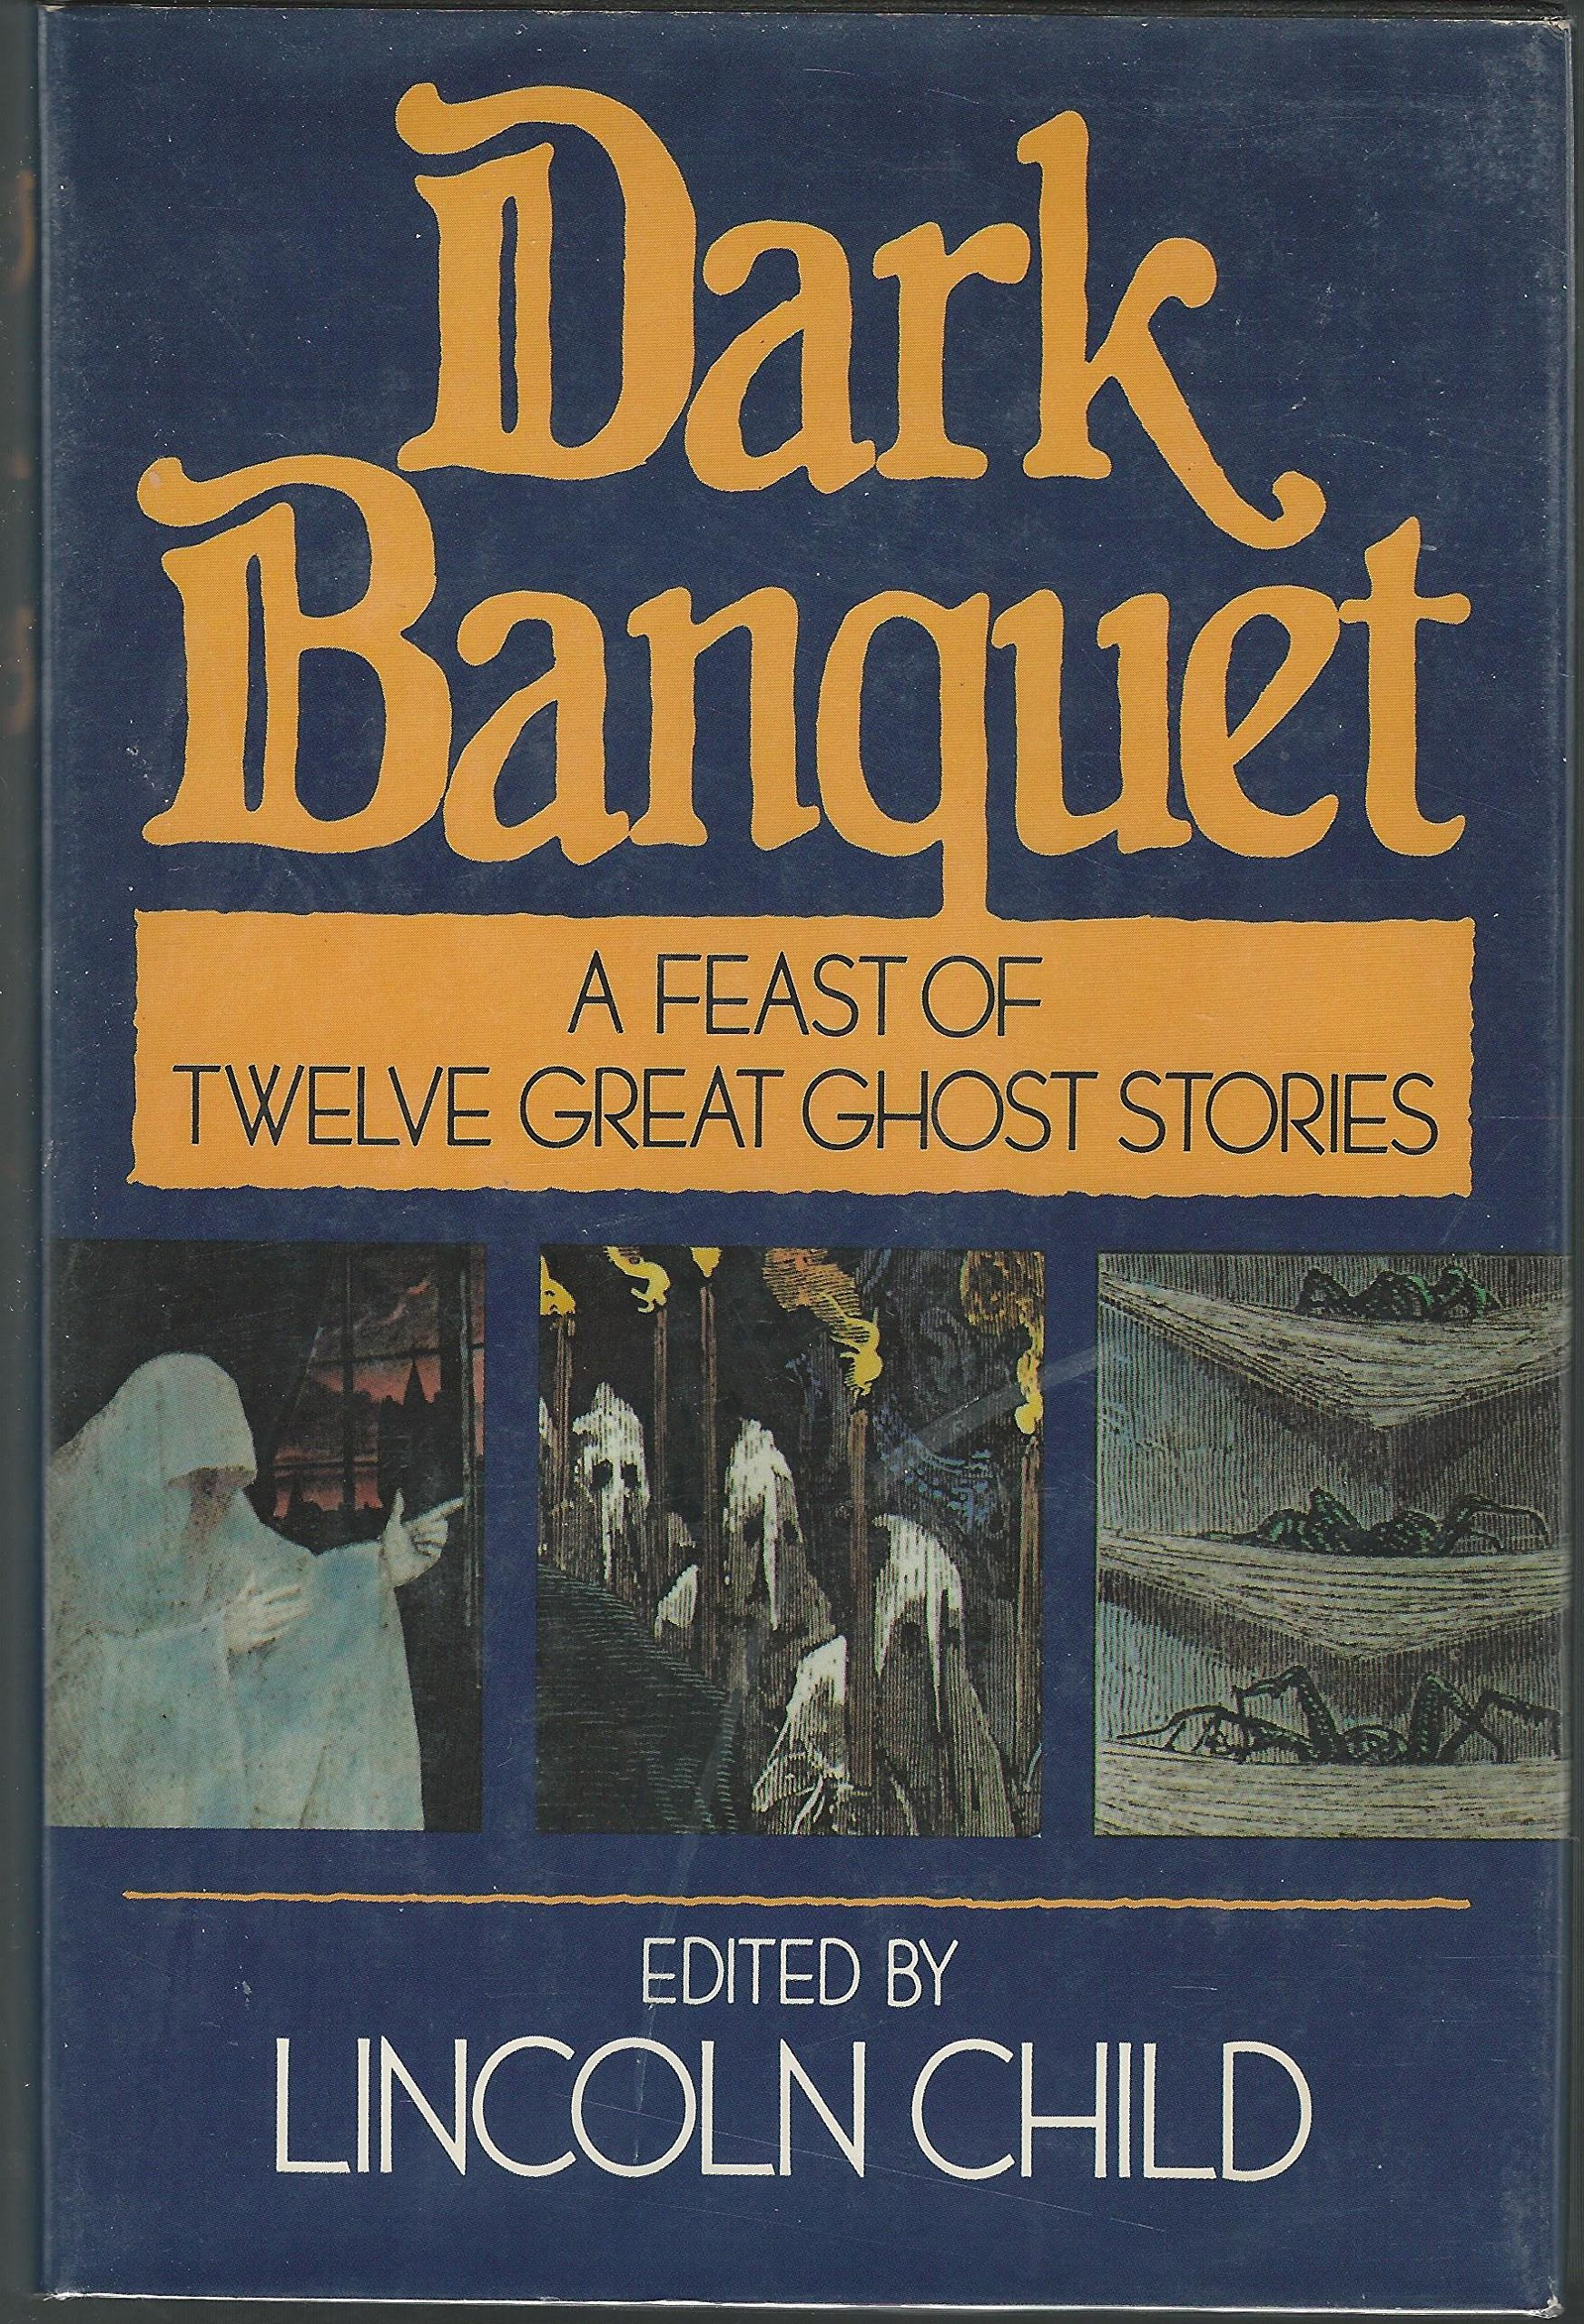 A Feast of Twelve Great Ghost Stories - ed. Lincoln Child